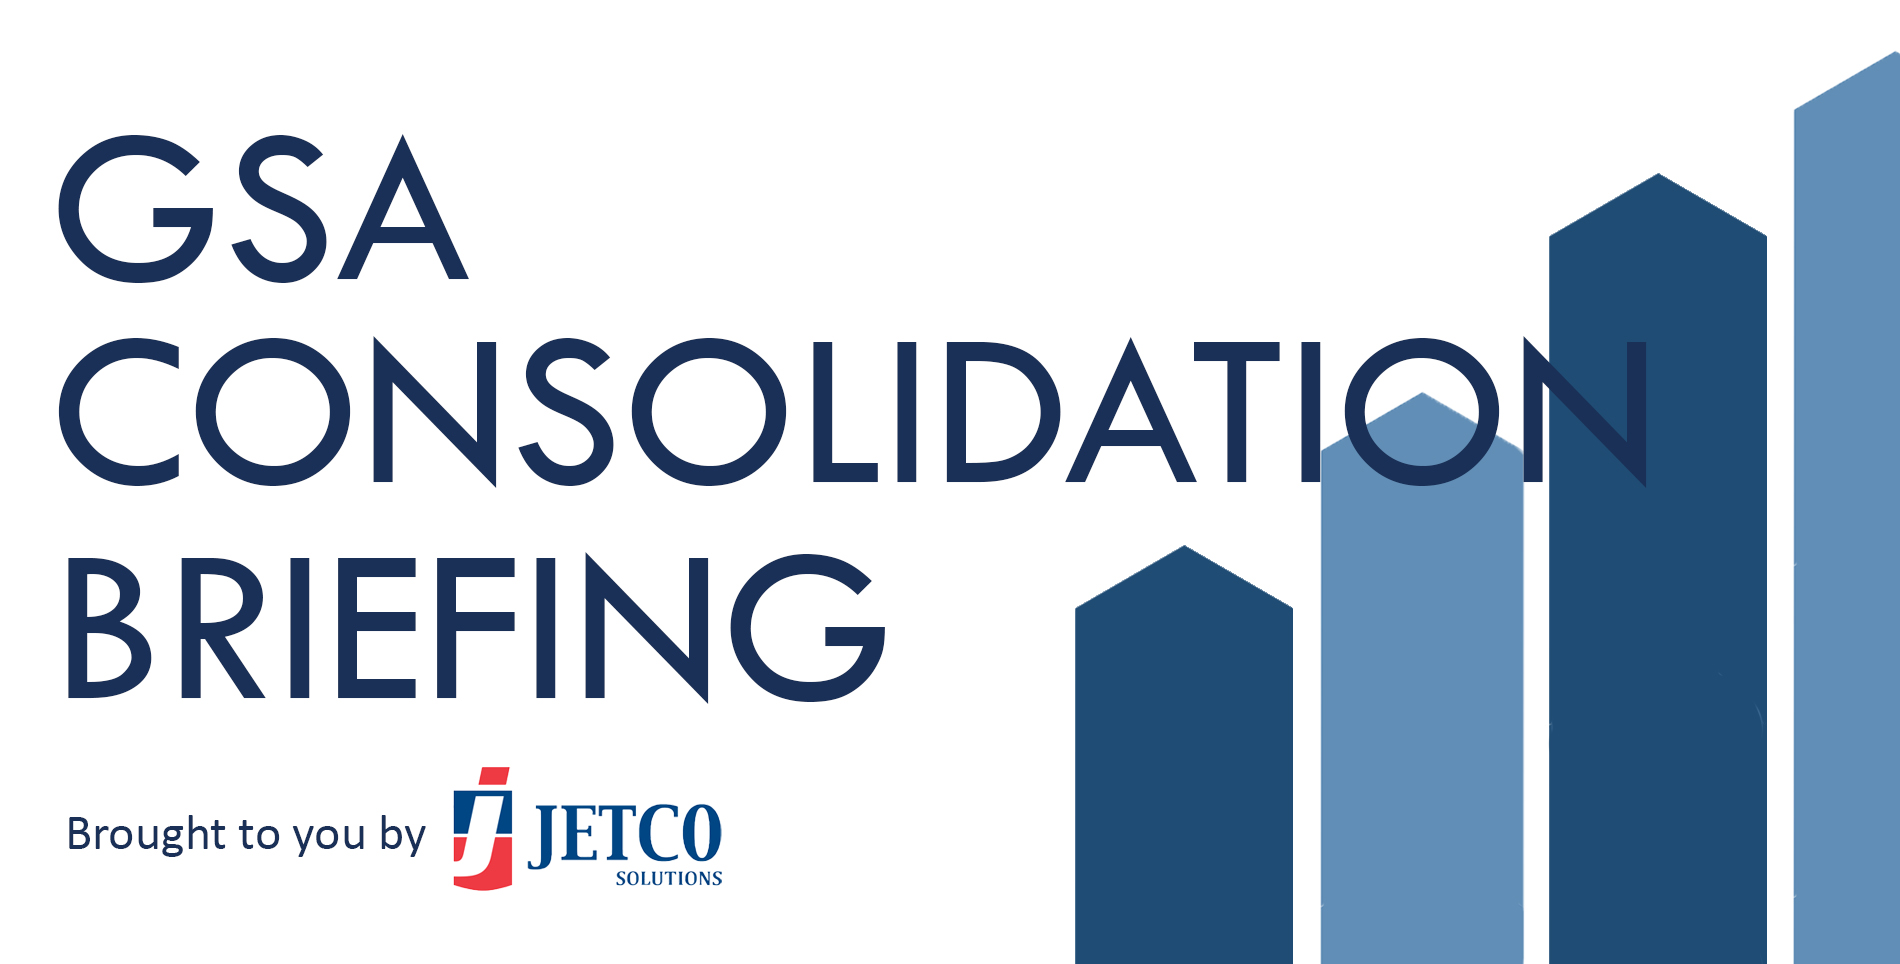 GSA Consolidation Briefing JetCo Solutions